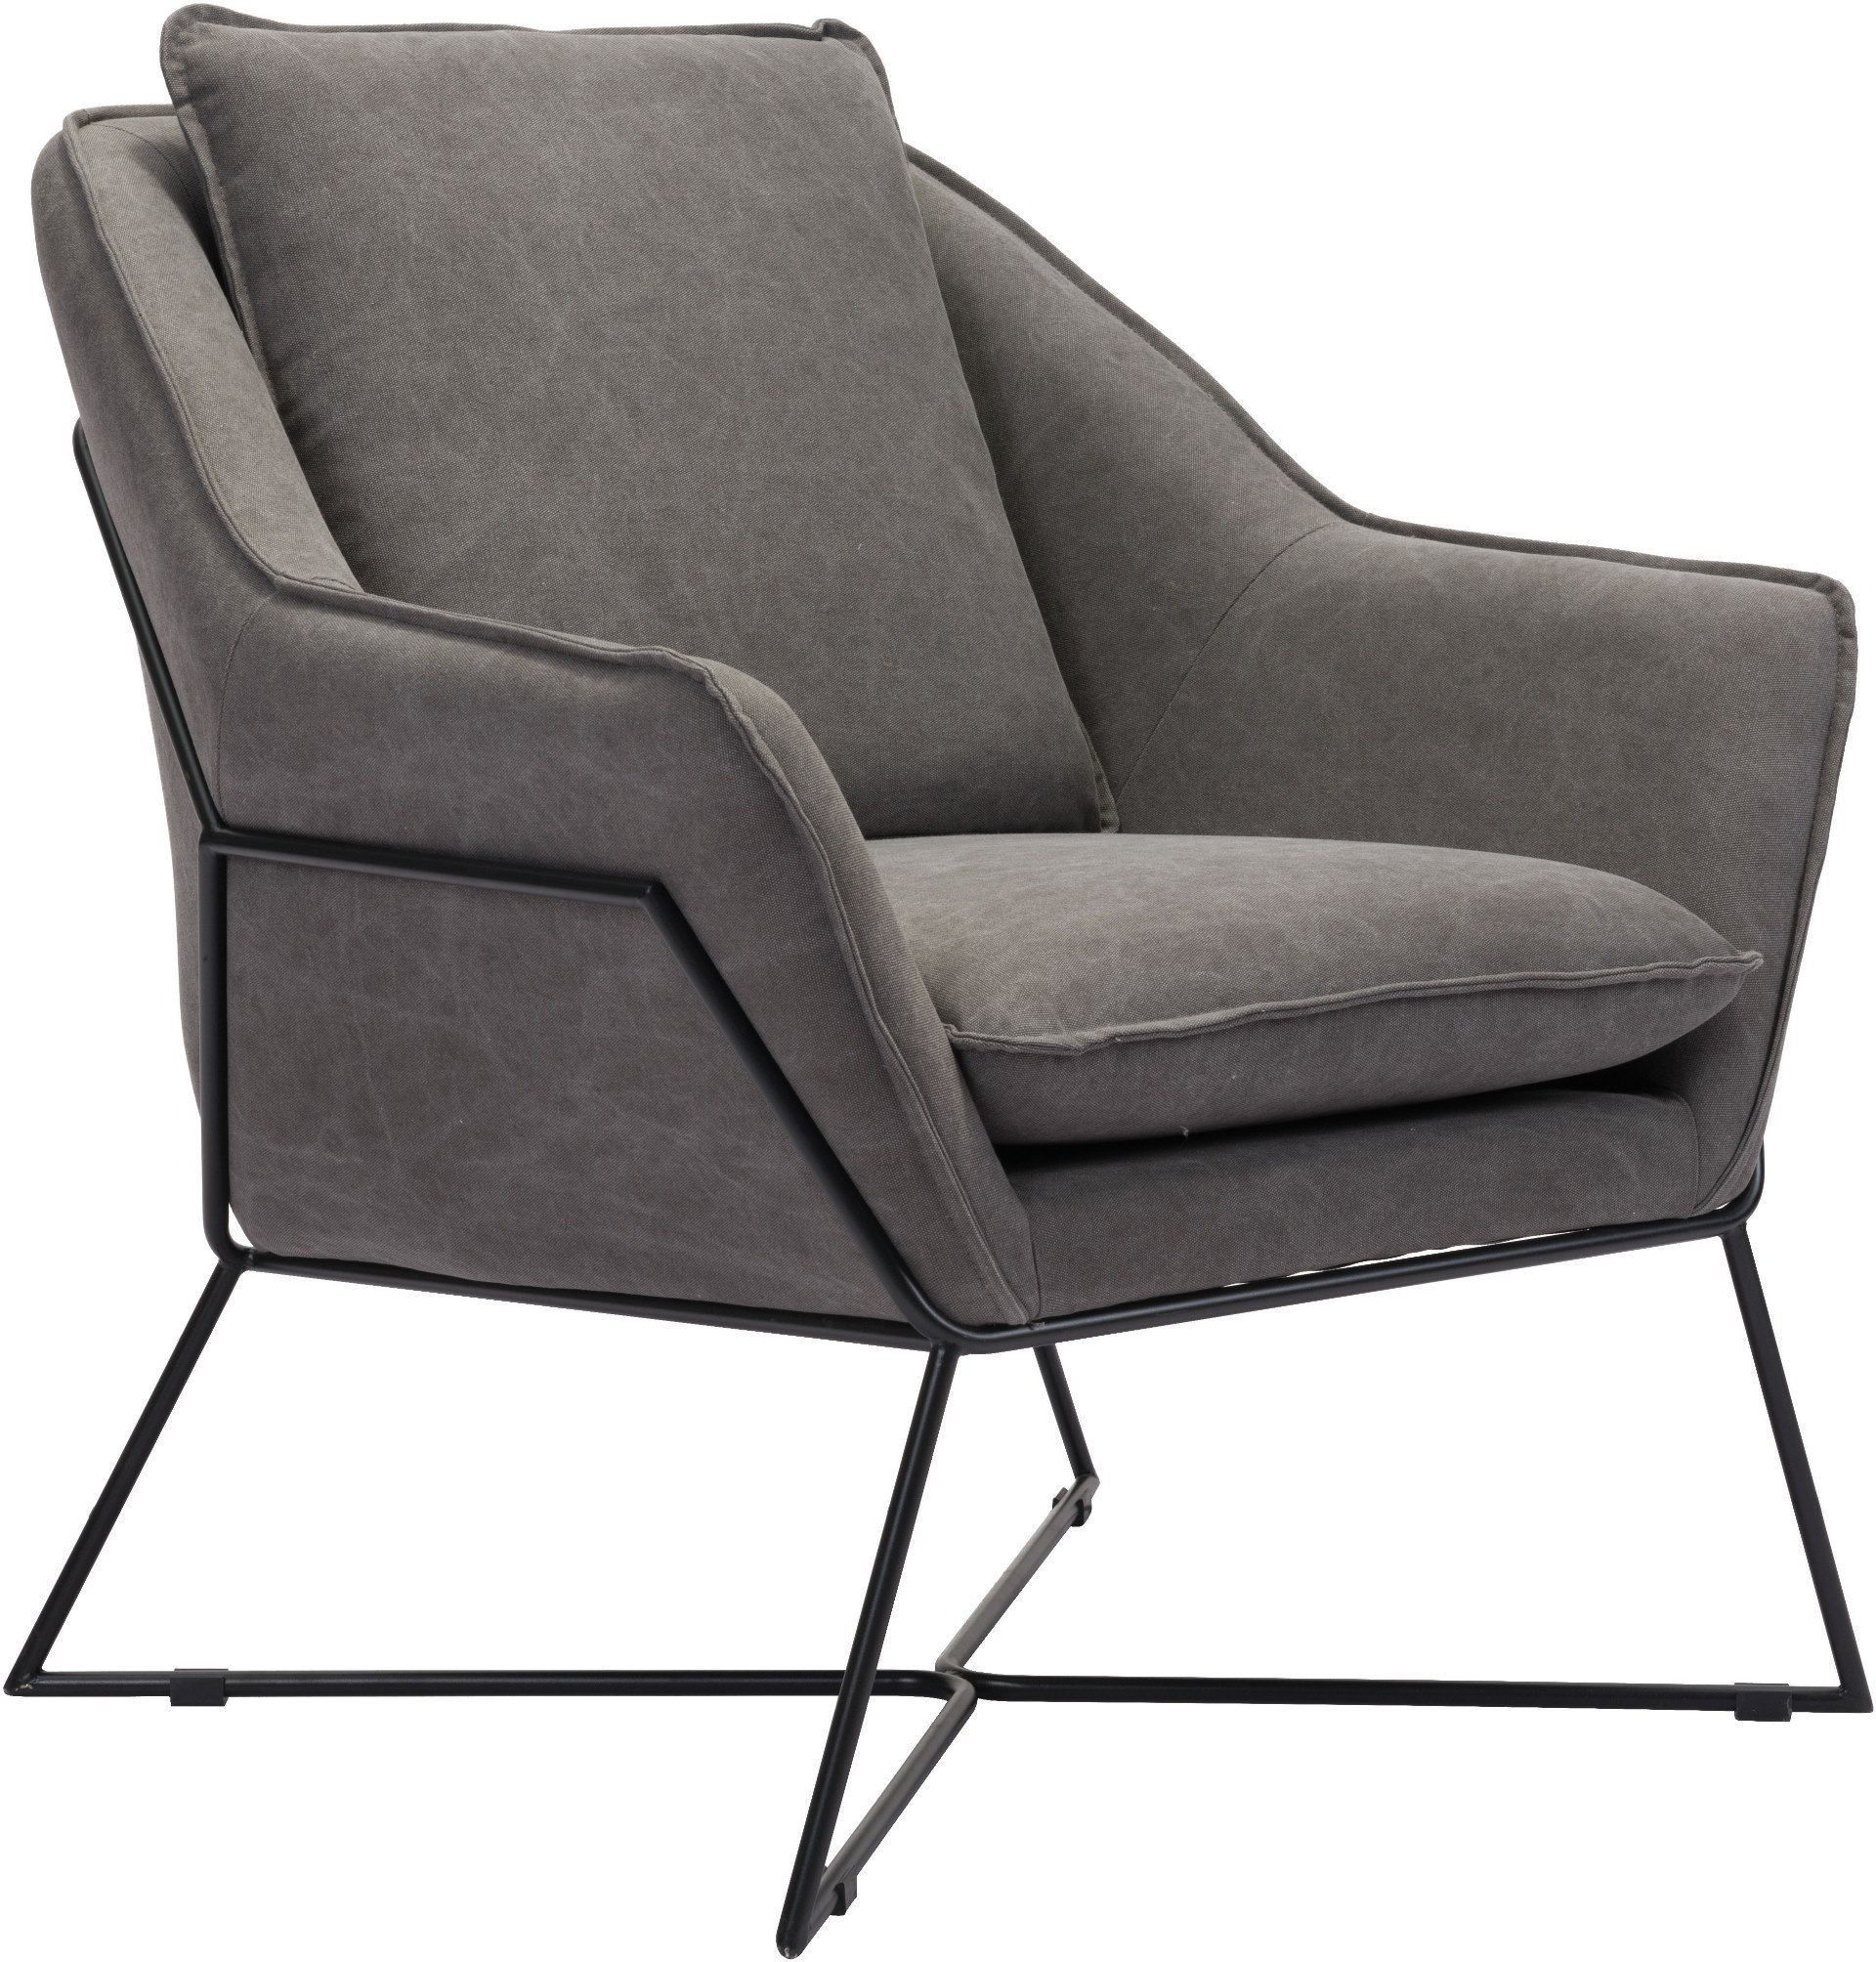 grey lounge chair double bean bag lincoln gray from zuo coleman furniture